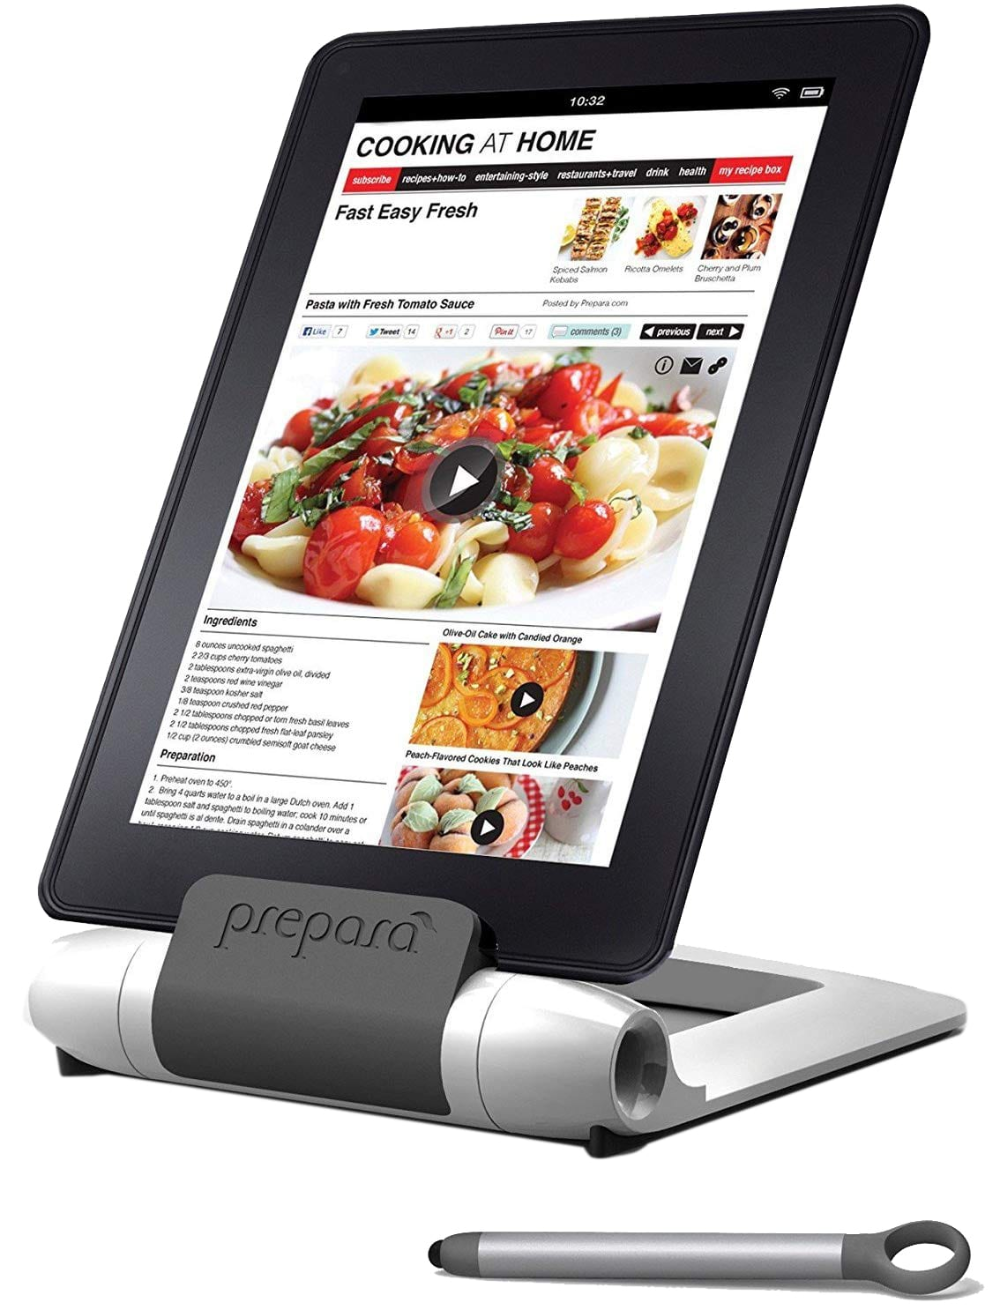 Prepara Pp08 Prepwt White Iprep Adjustable Stand For Phones Tablets E Readers Large Tablet Stand Tablet Apple Iphone 5s